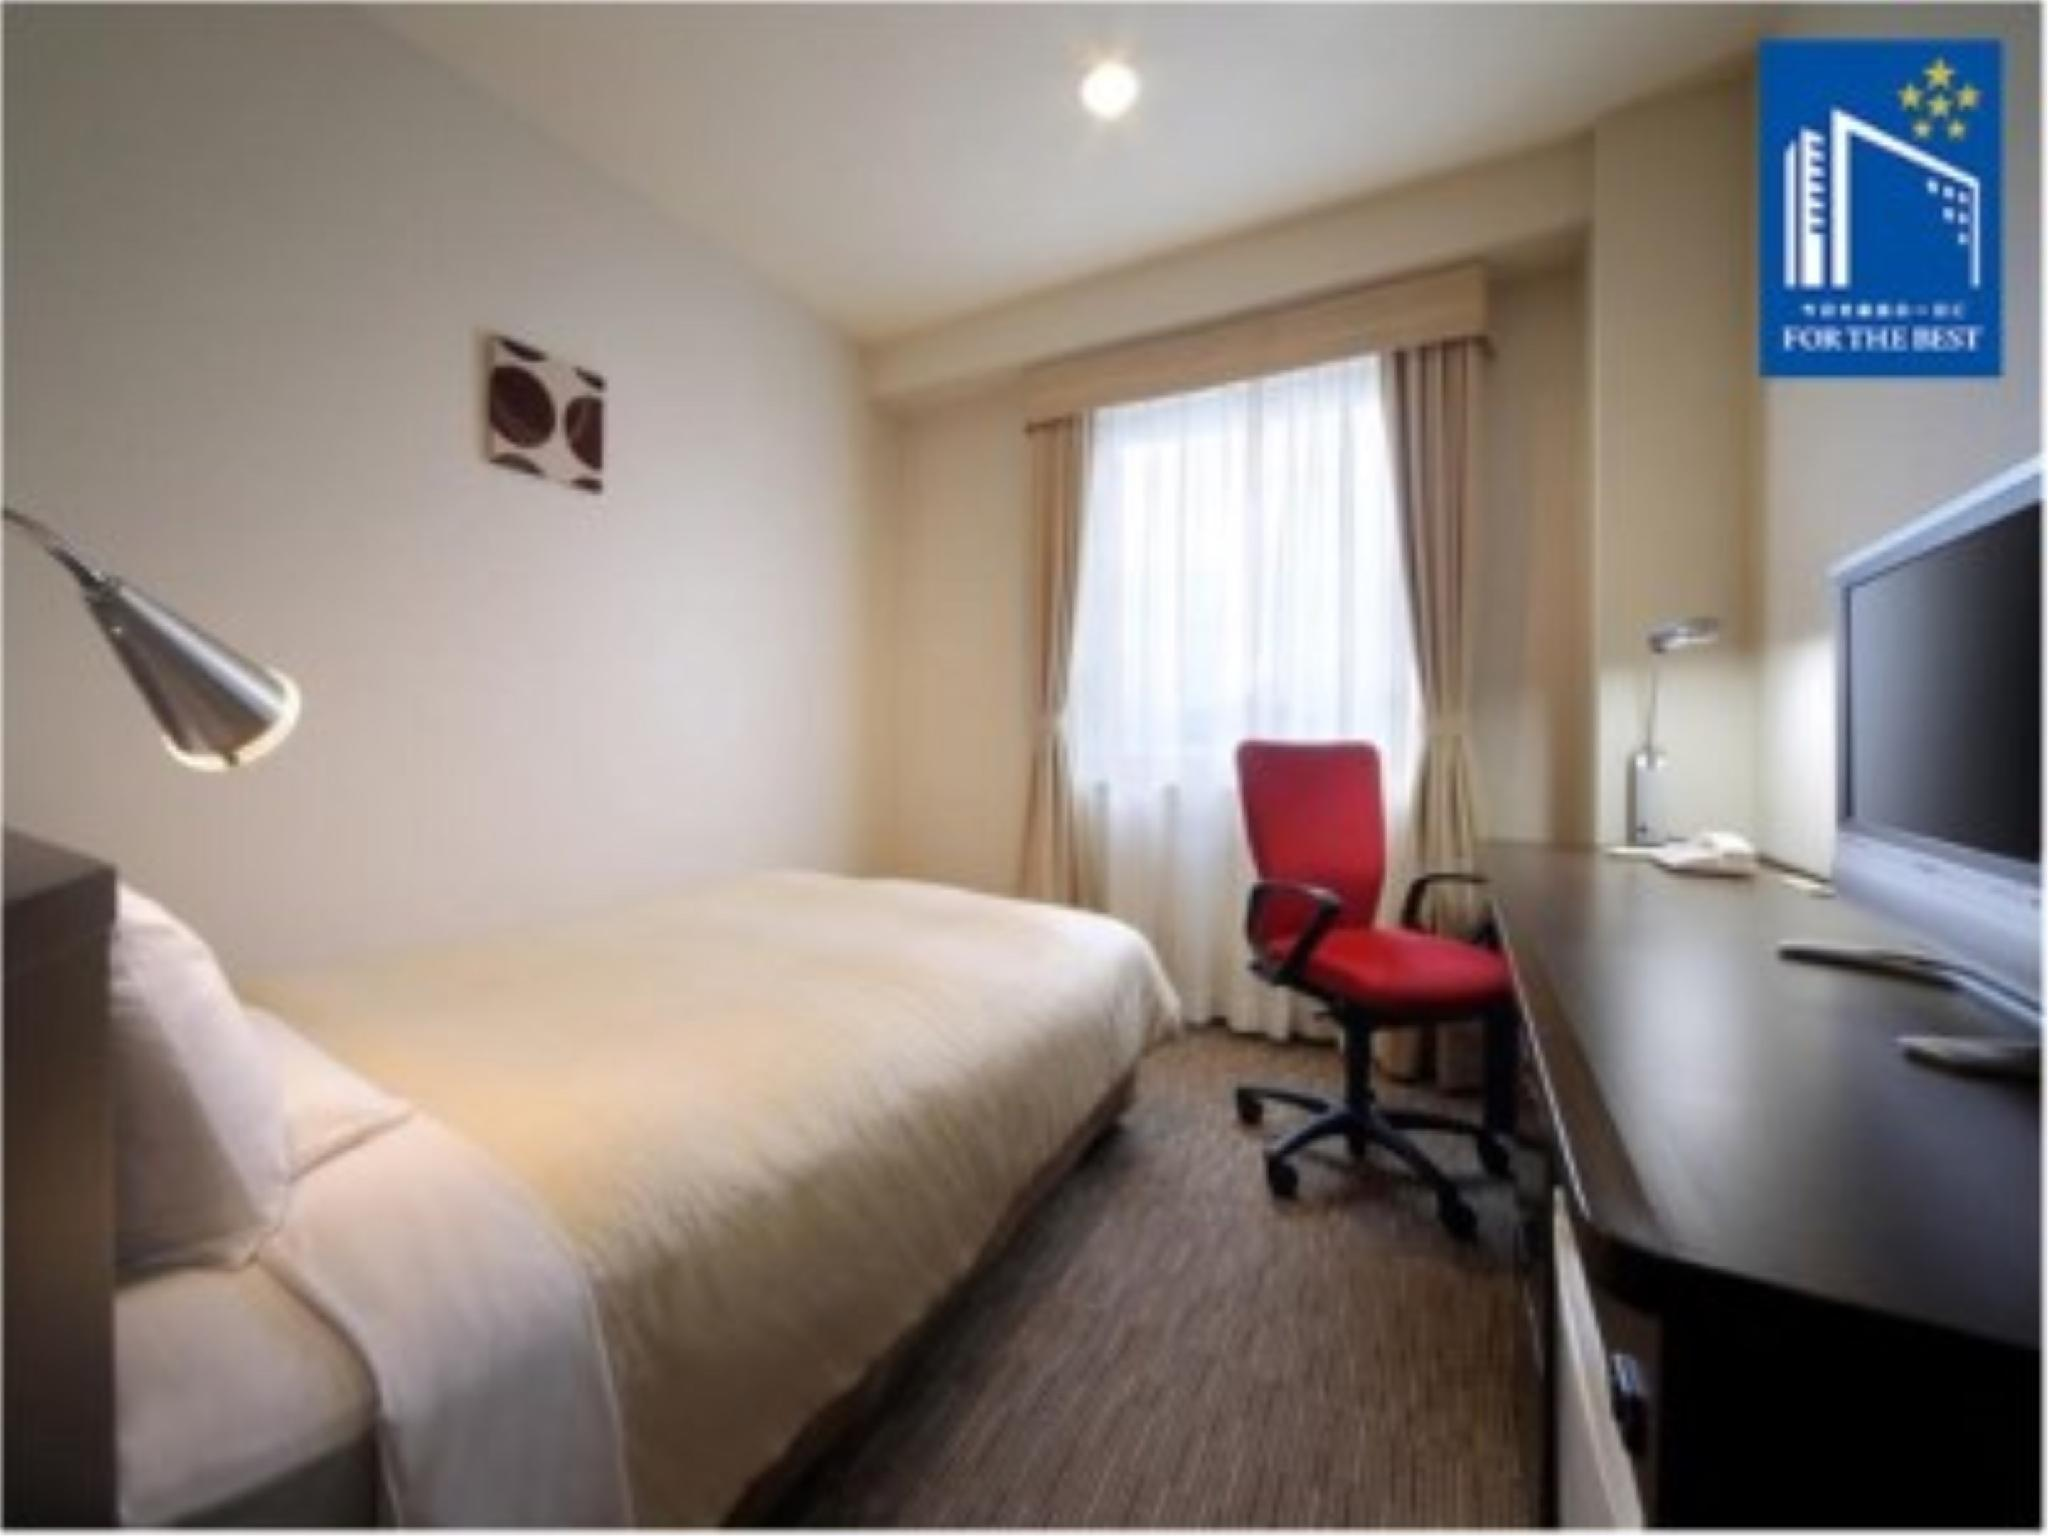 Standard Compact Double Room